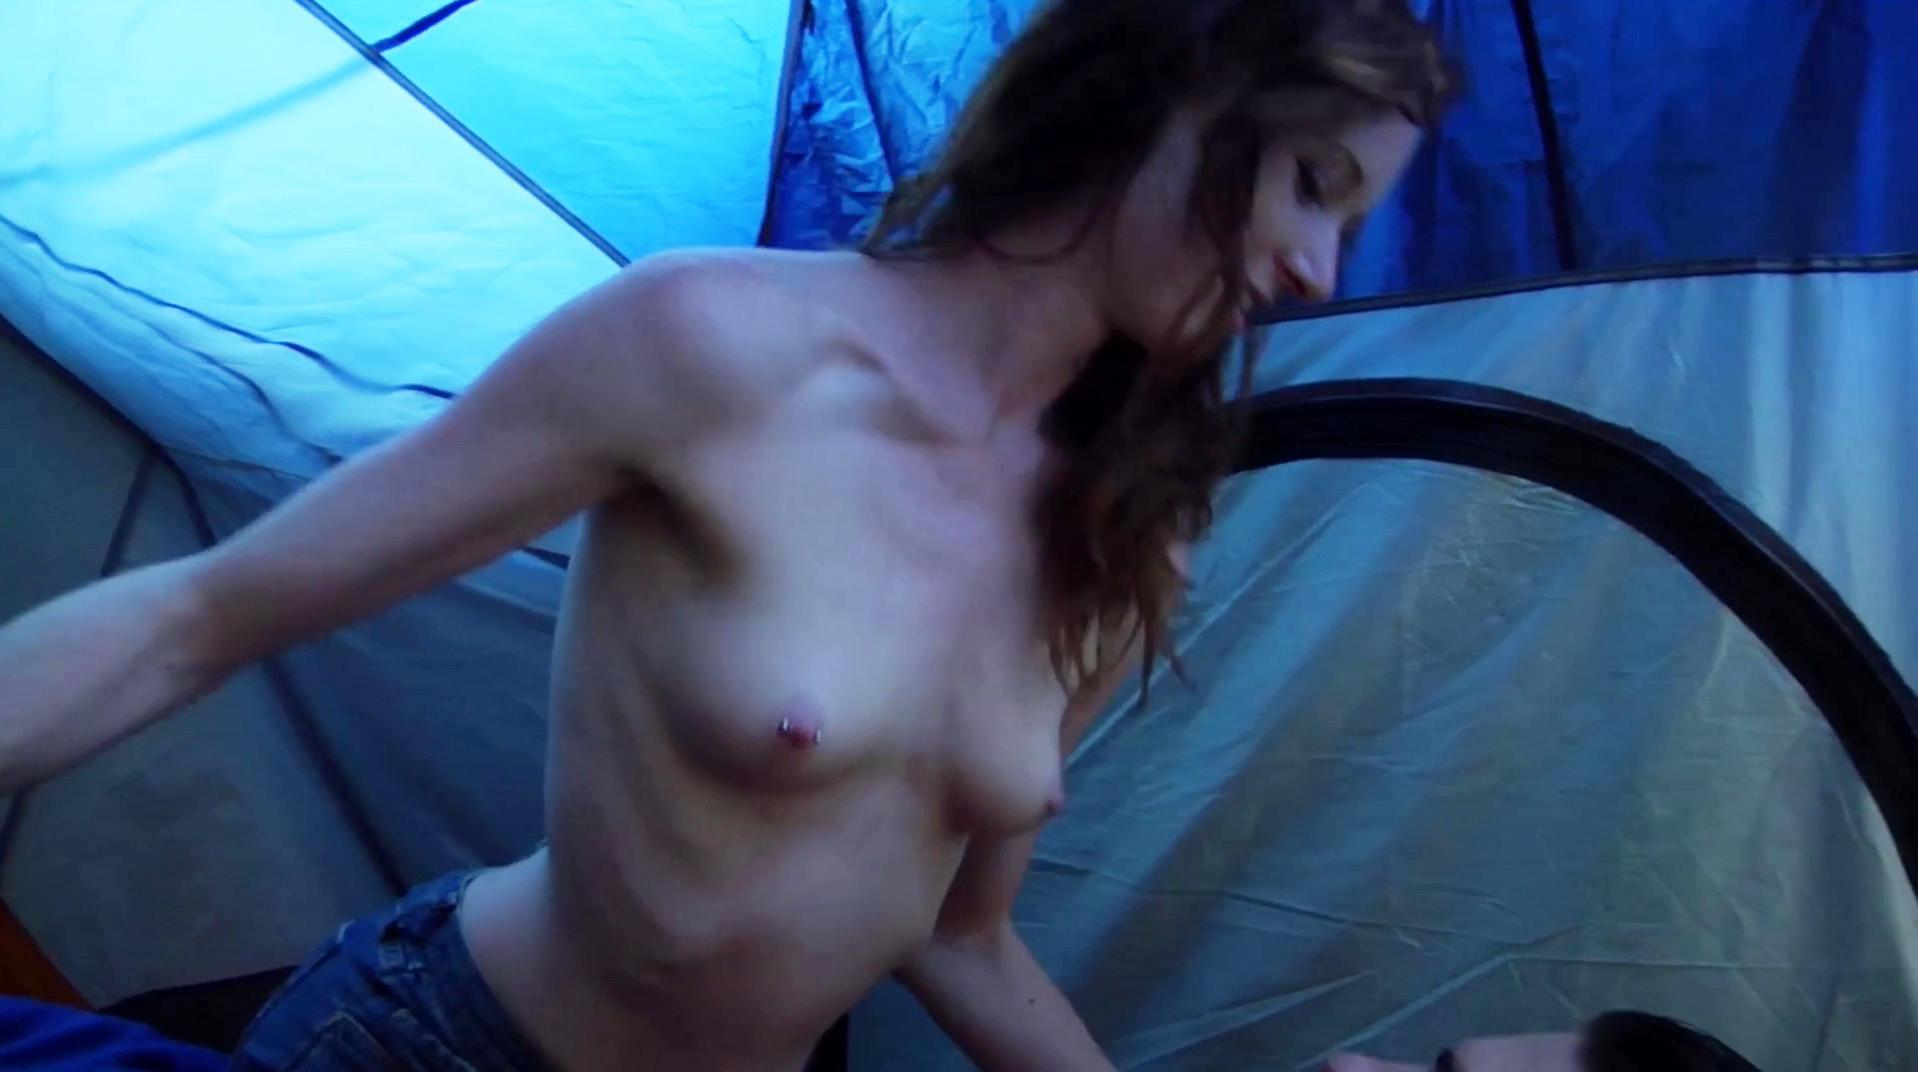 Jill Evyn nude - Axe Giant: The Wrath of Paul Bunyan (2013)